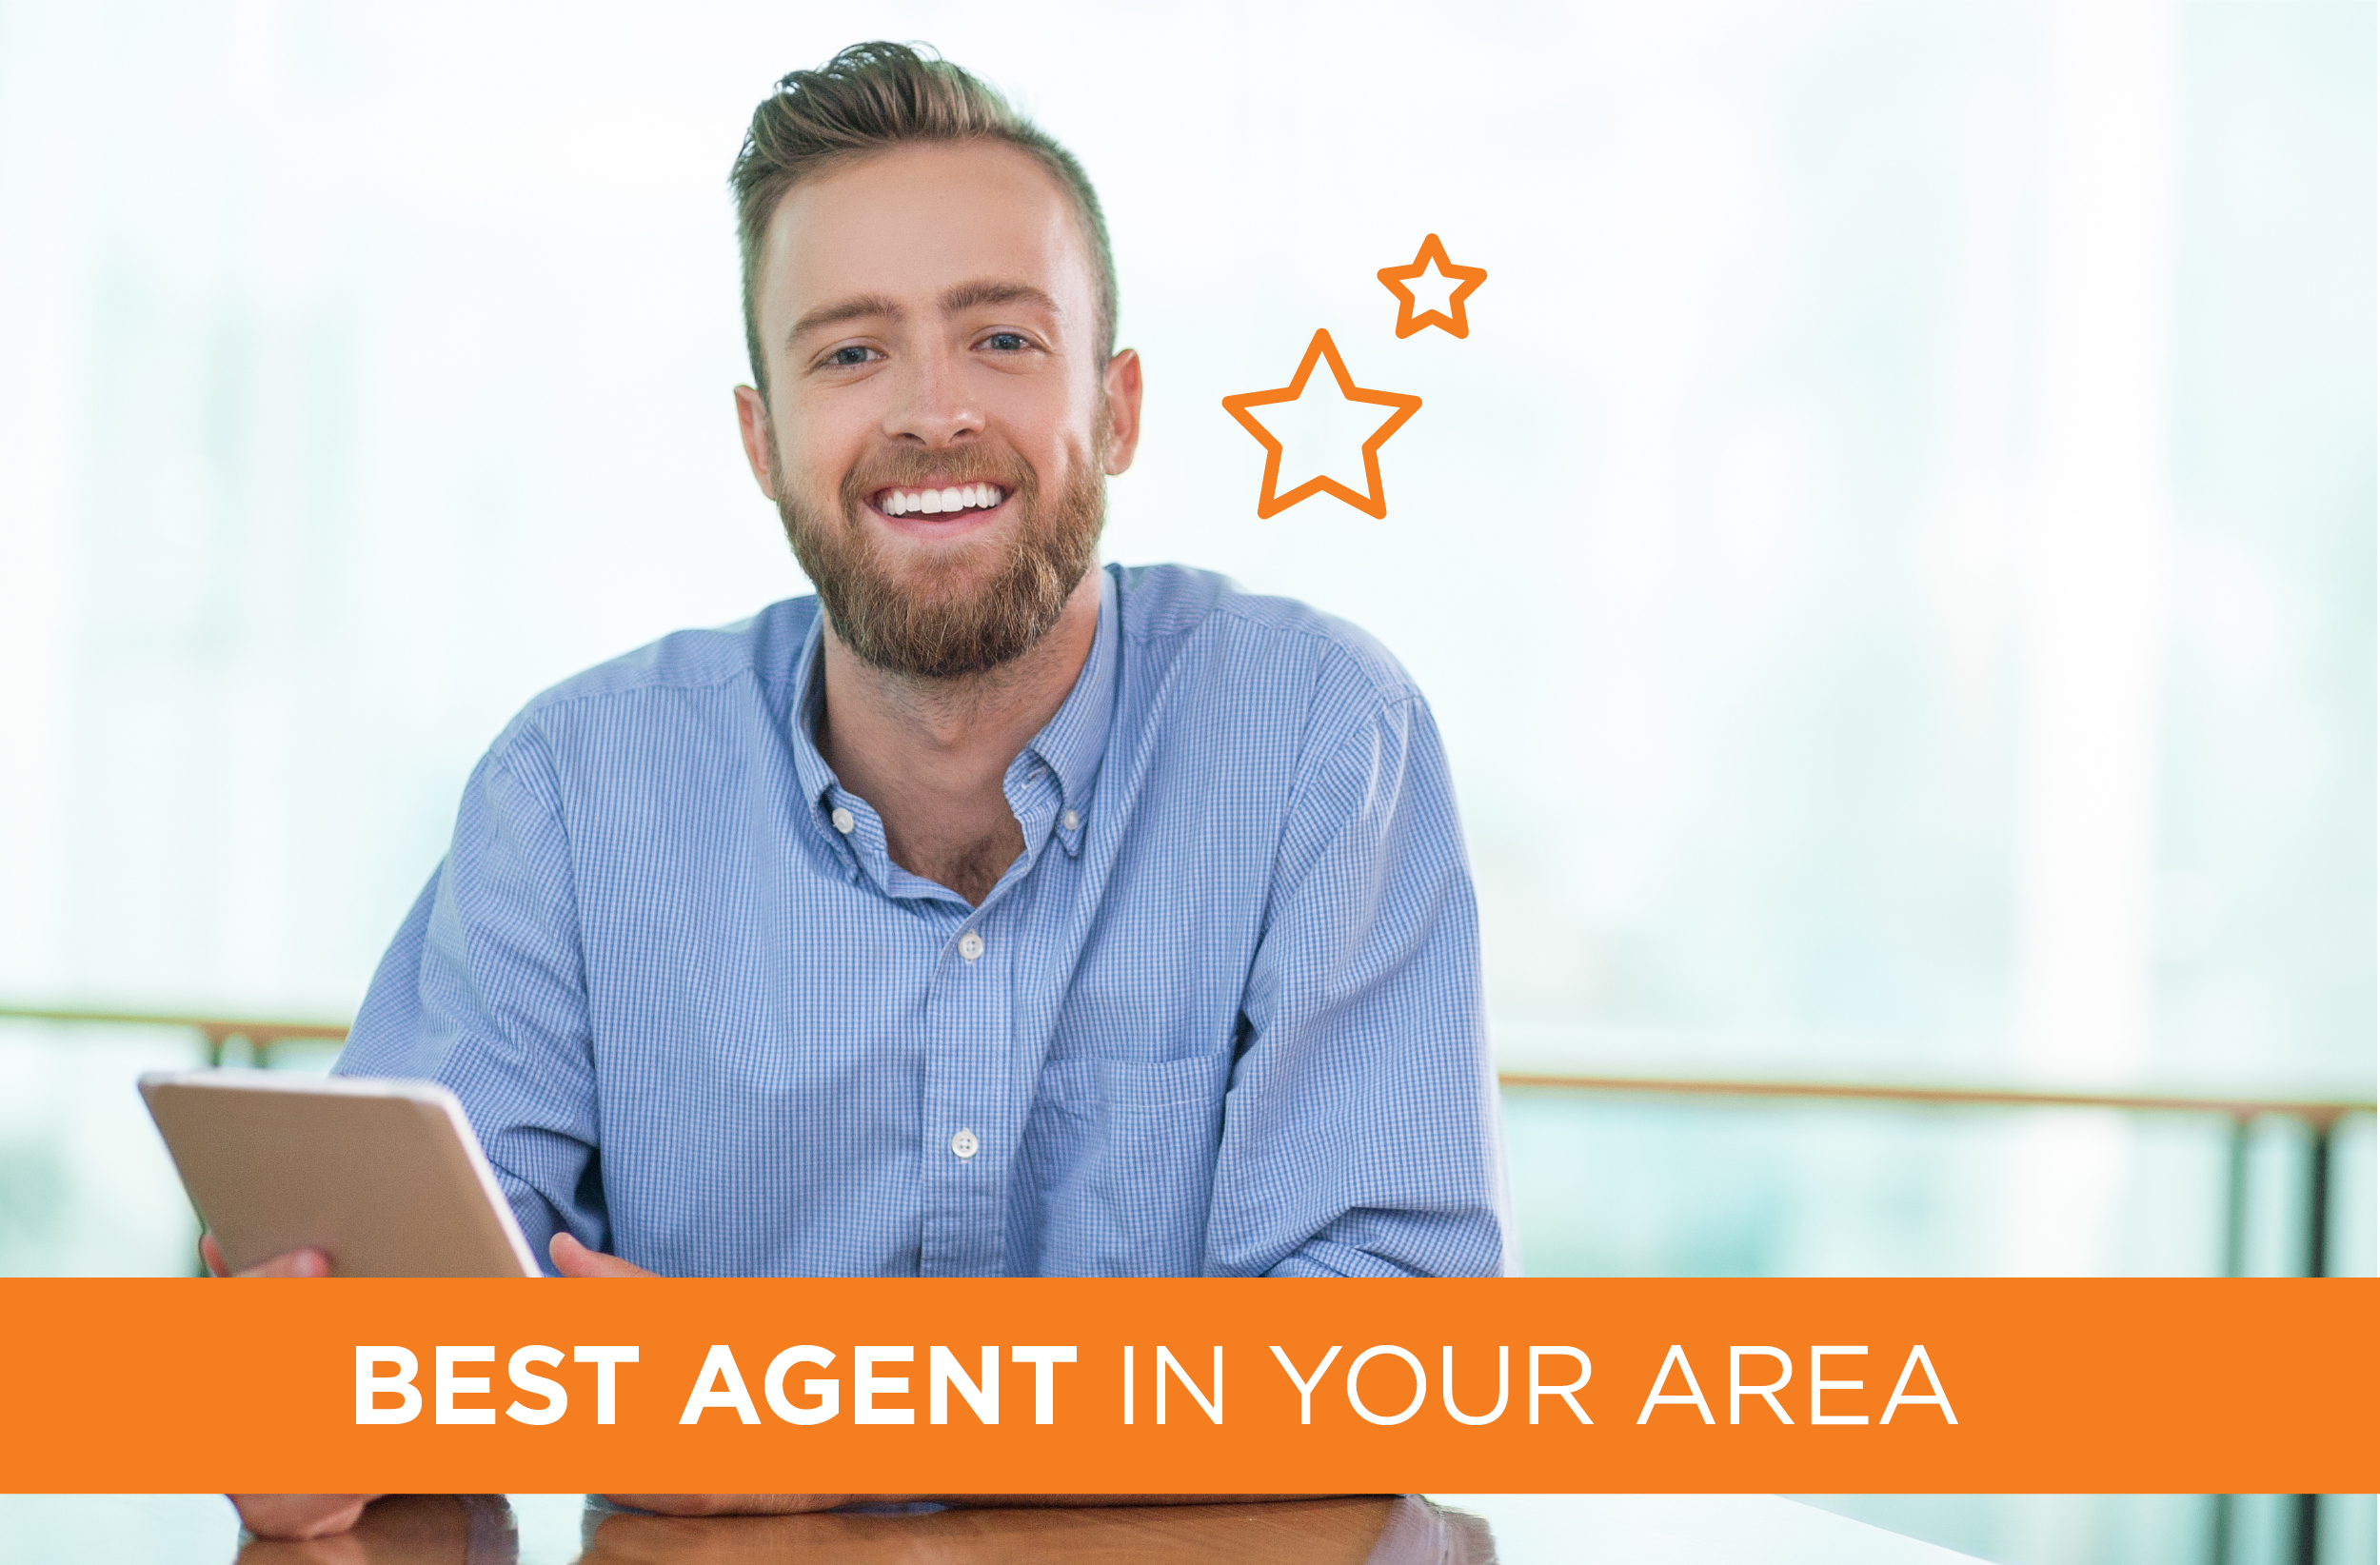 Best-Agent-in-Your-Area-01